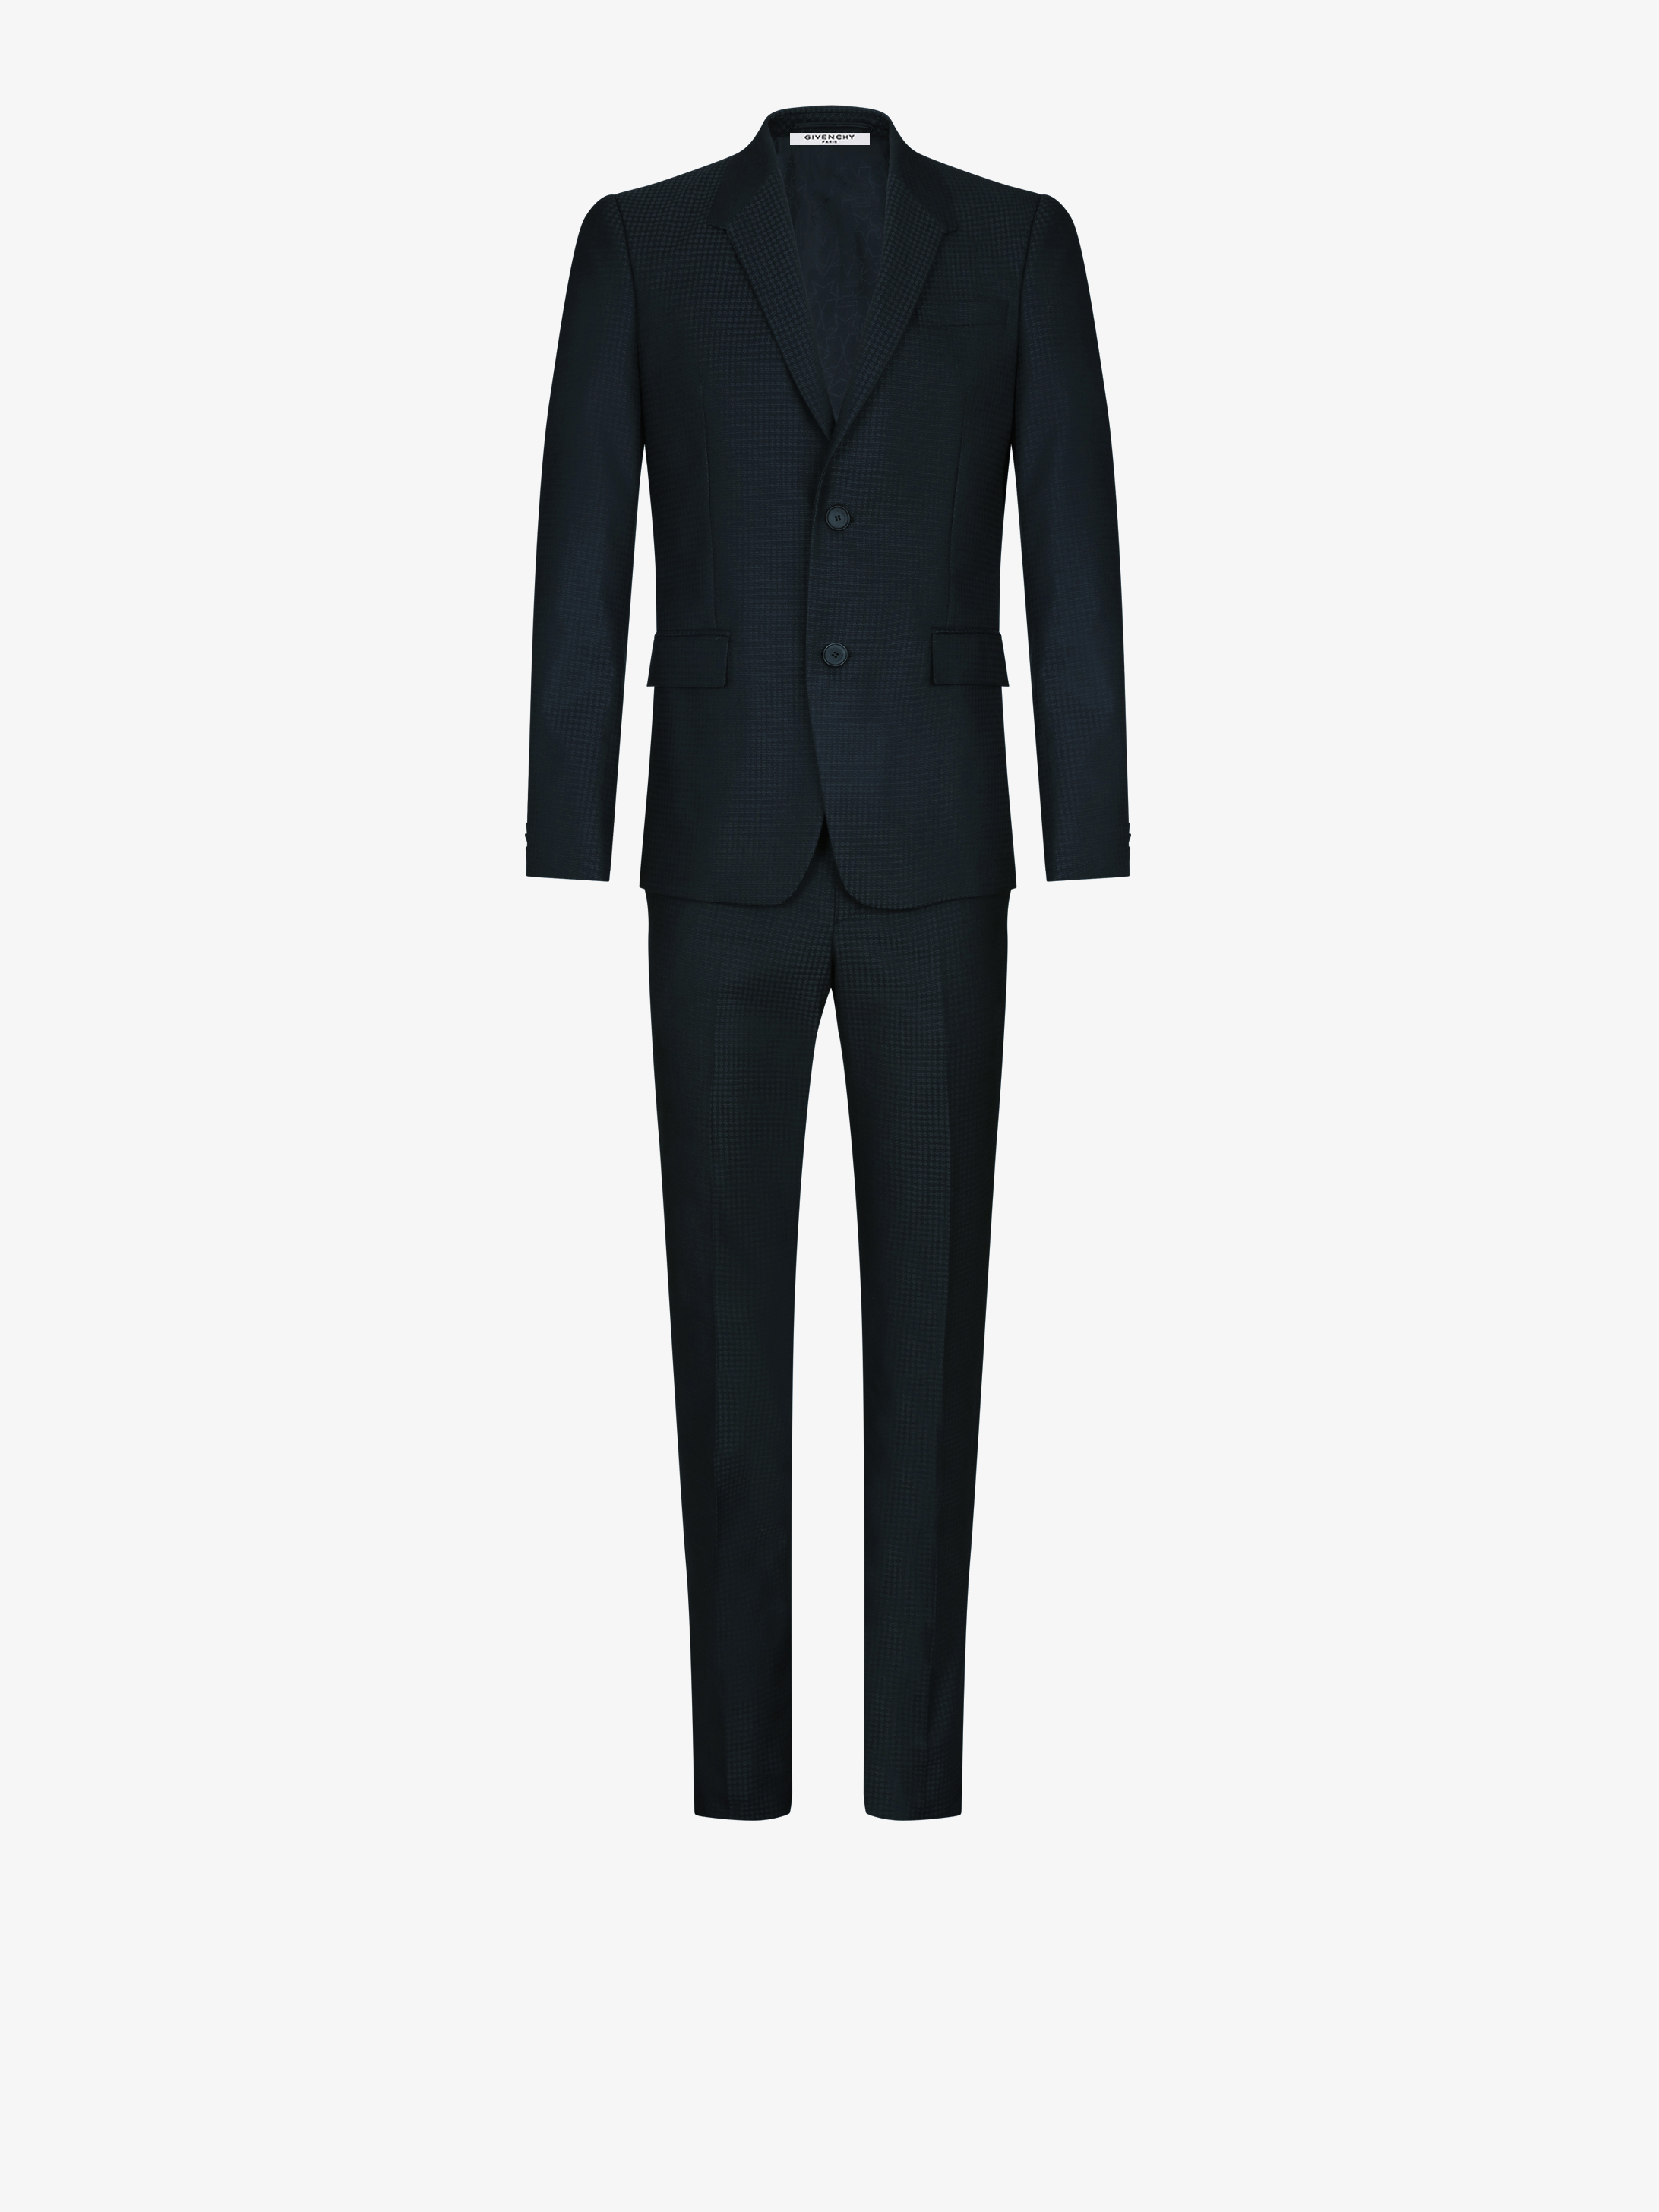 Regular fit wool suit with contrasted collar